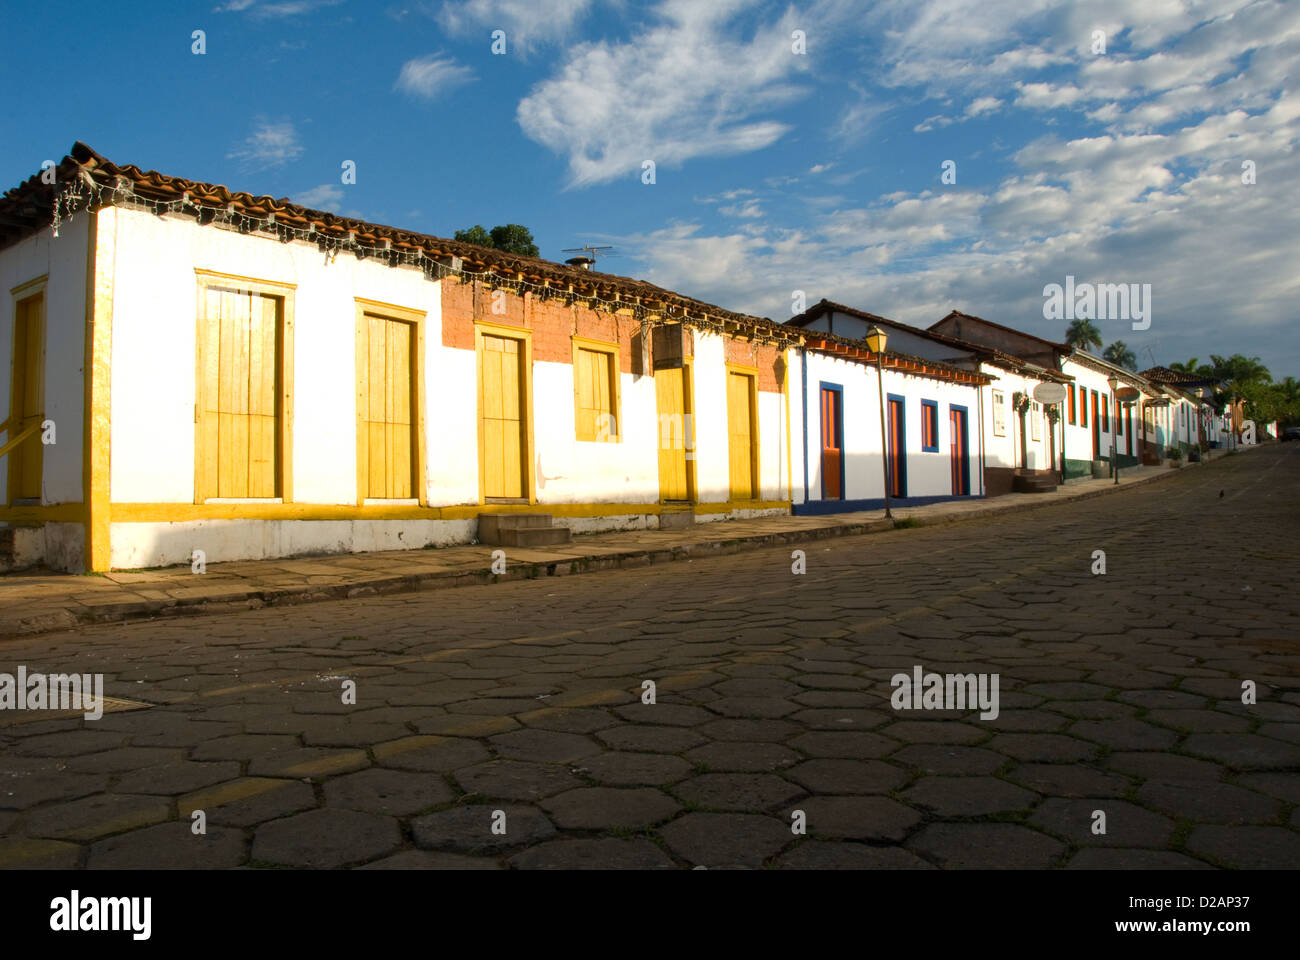 Pirenópolis is a town located in the Brazilian state of Goiás - Stock Image